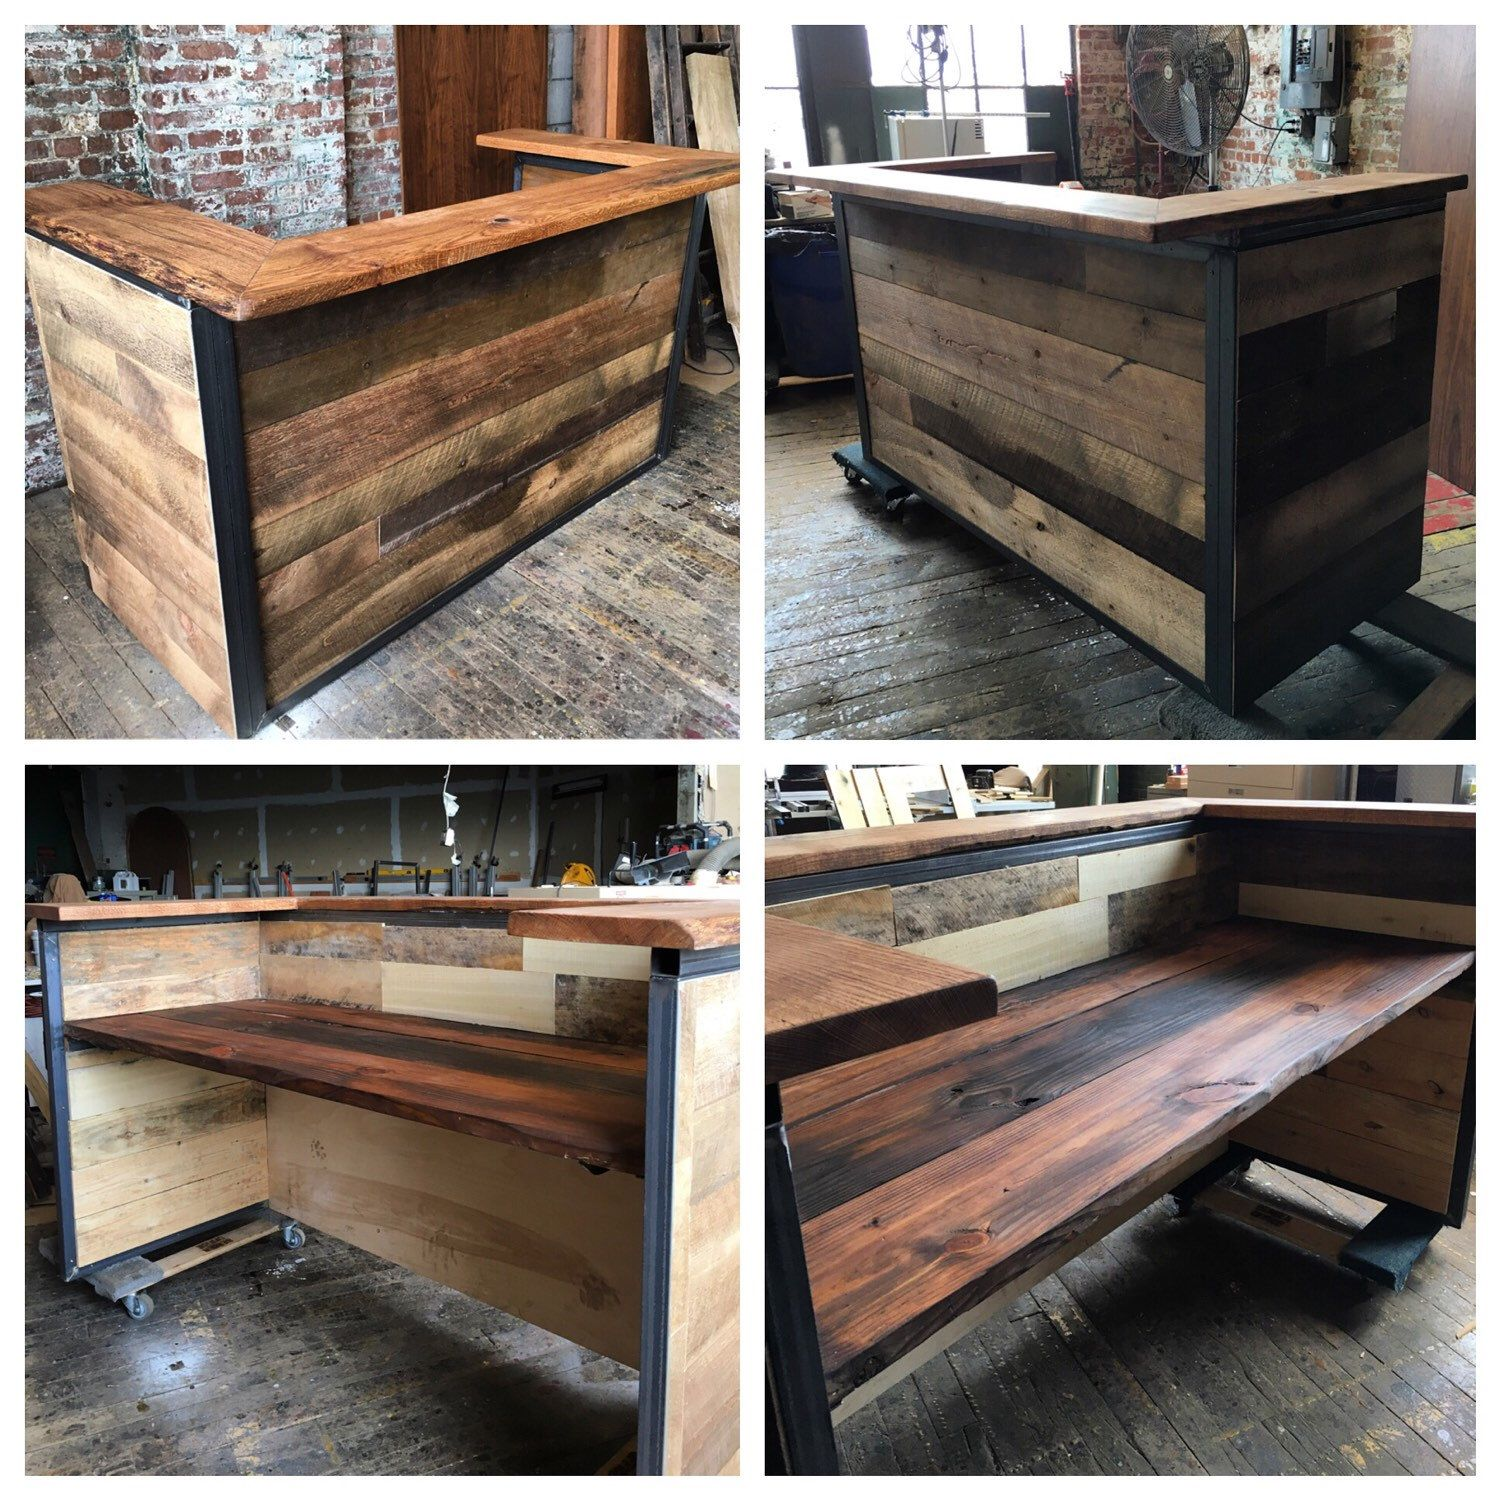 reclaimed lovable i wood on feel an top world final for it color ideas old also the gives decor desk love